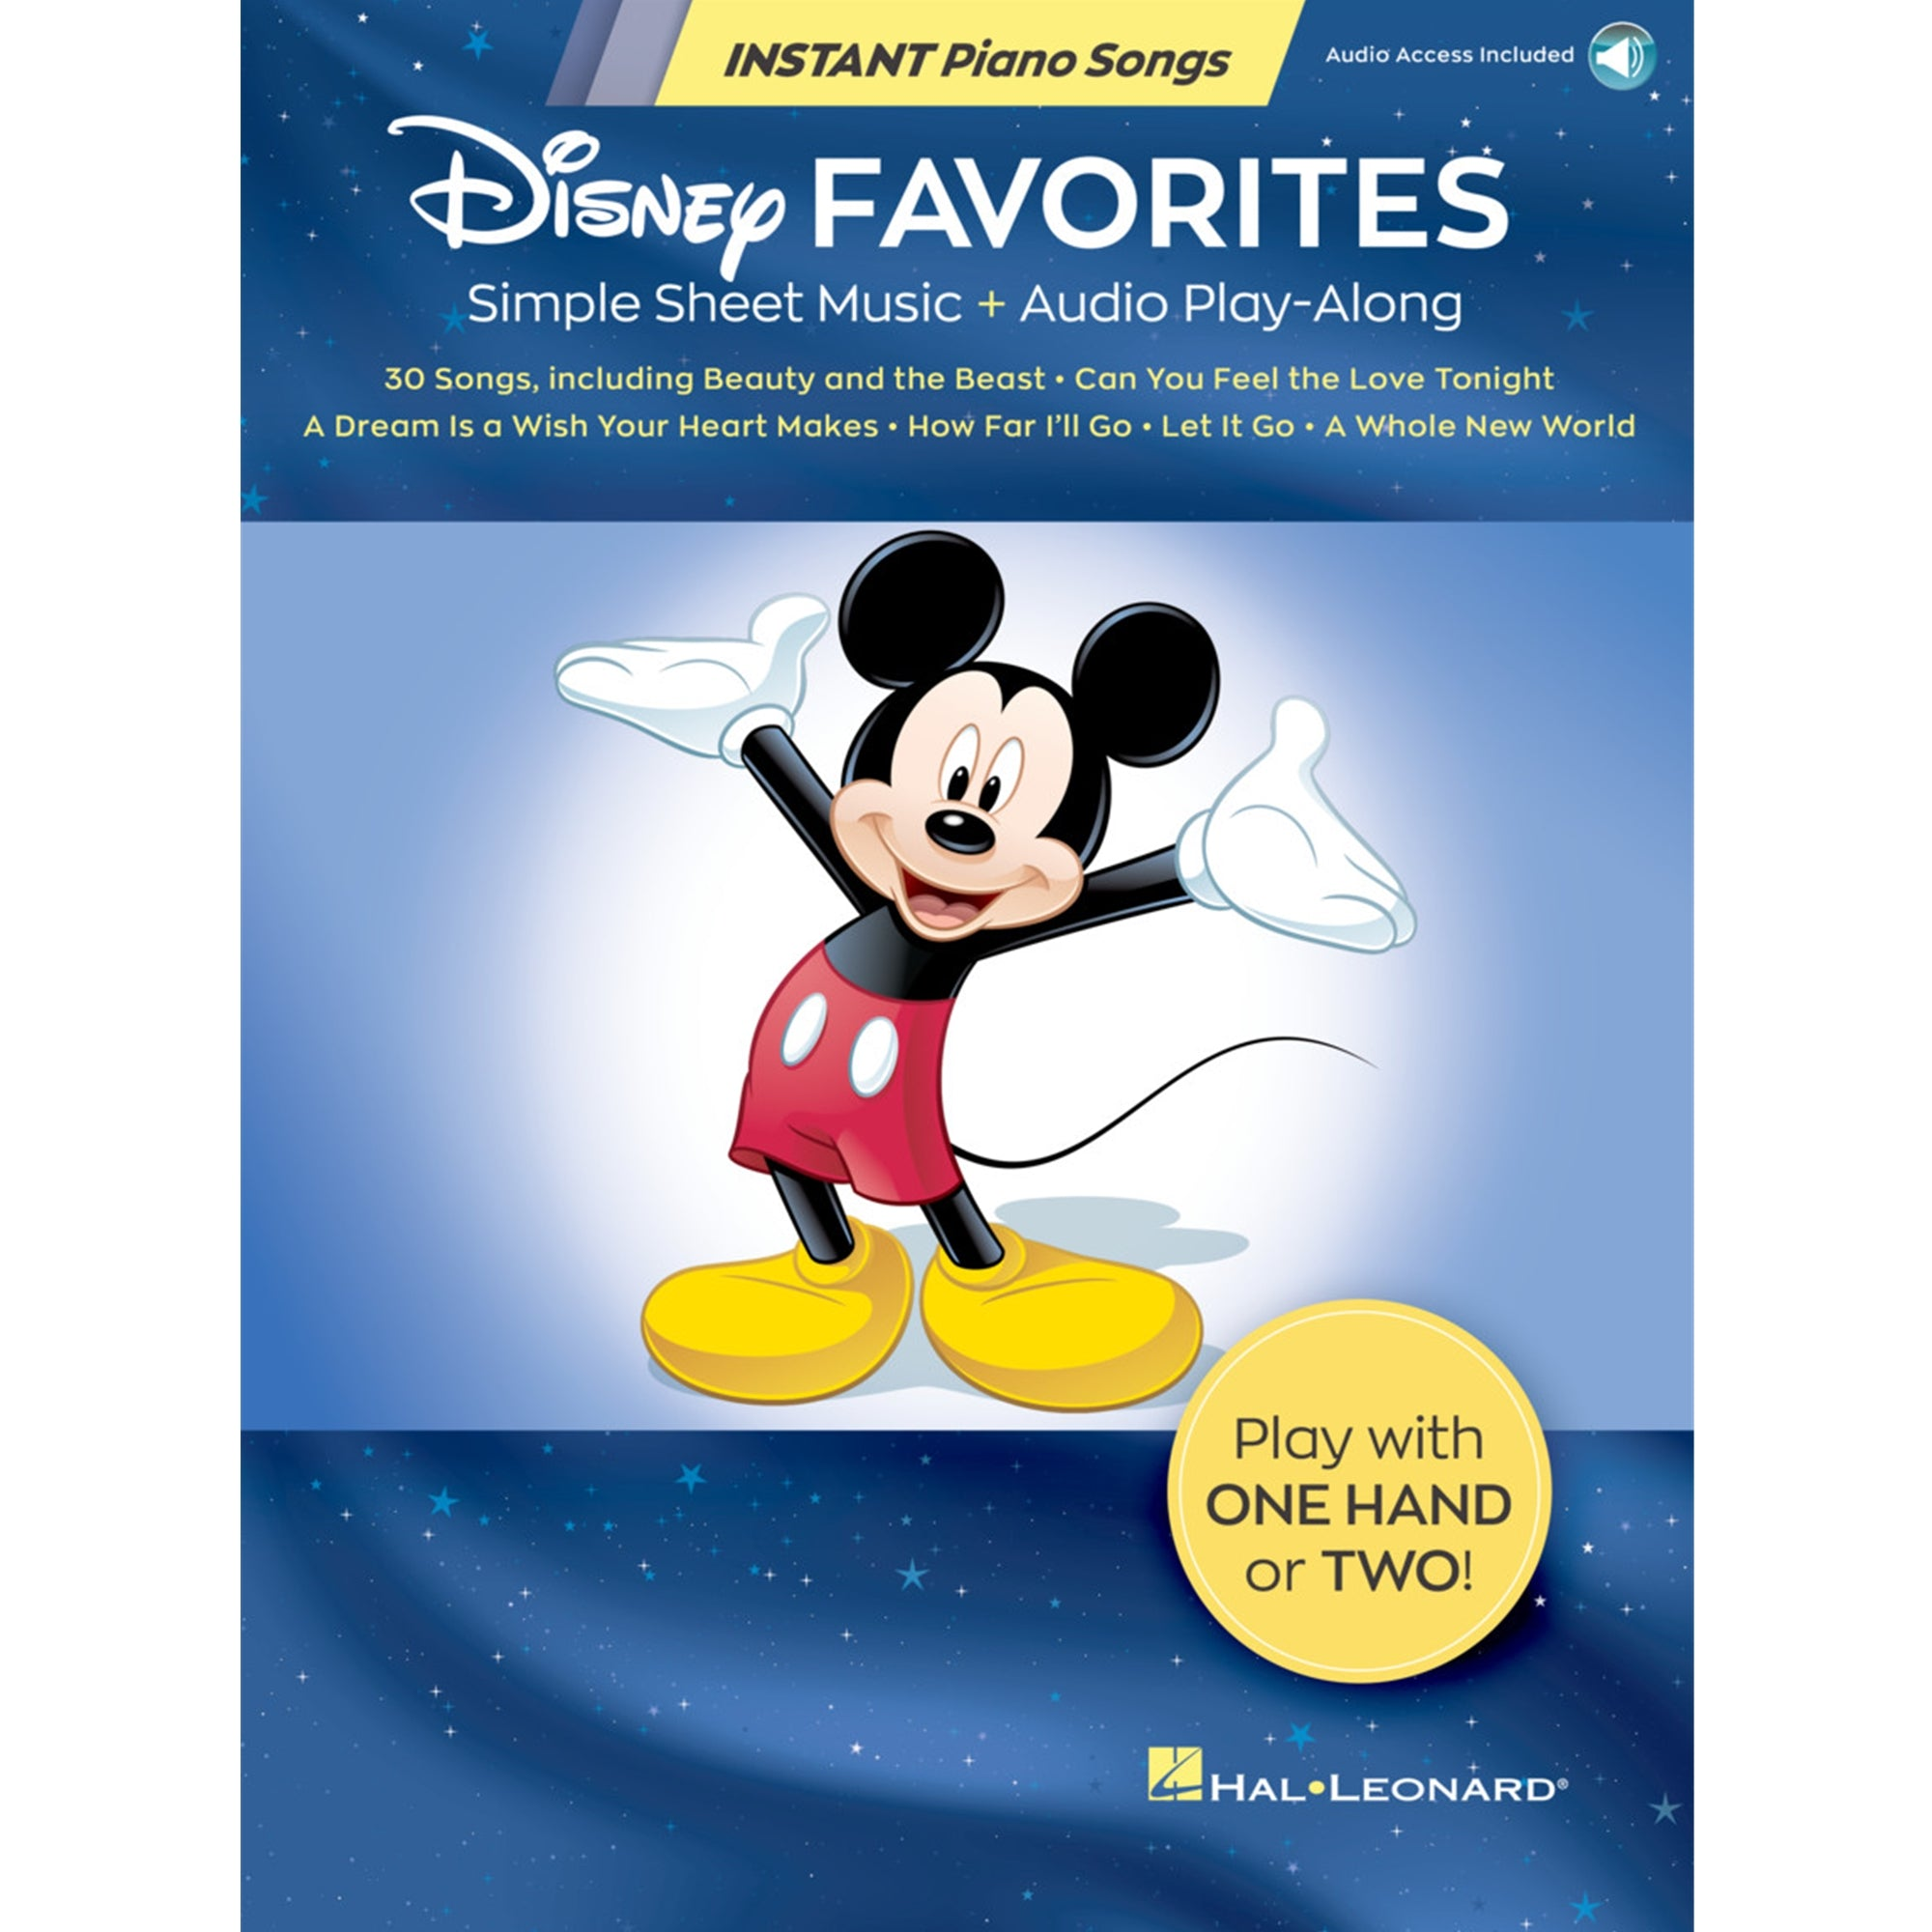 HAL LEONARD 283720 Disney Favorites – Instant Piano Songs